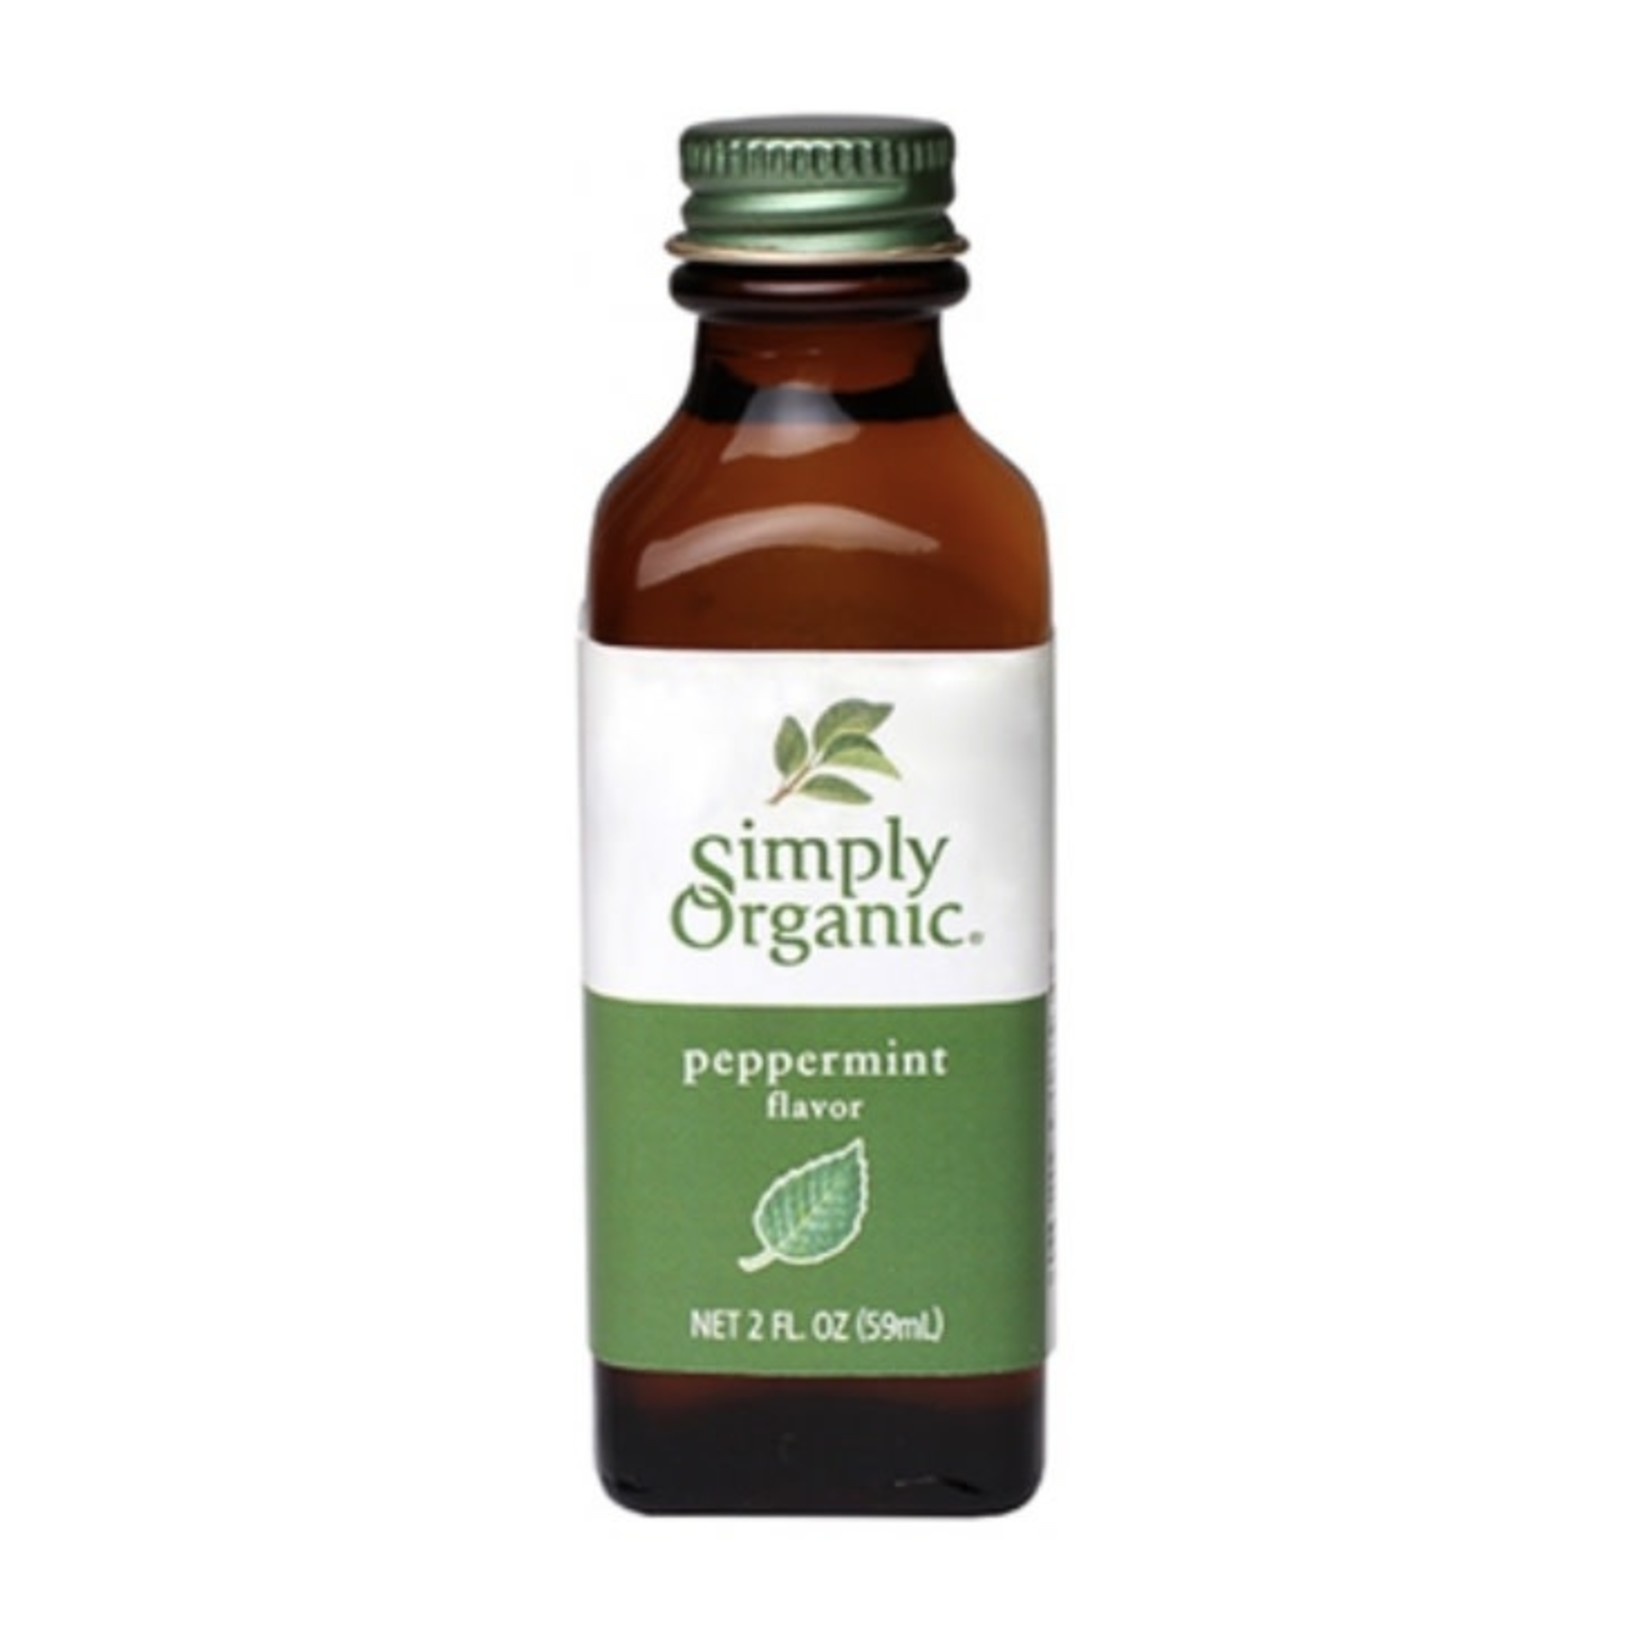 Simply Organic Simply Organic Peppermint Flavour 59ml